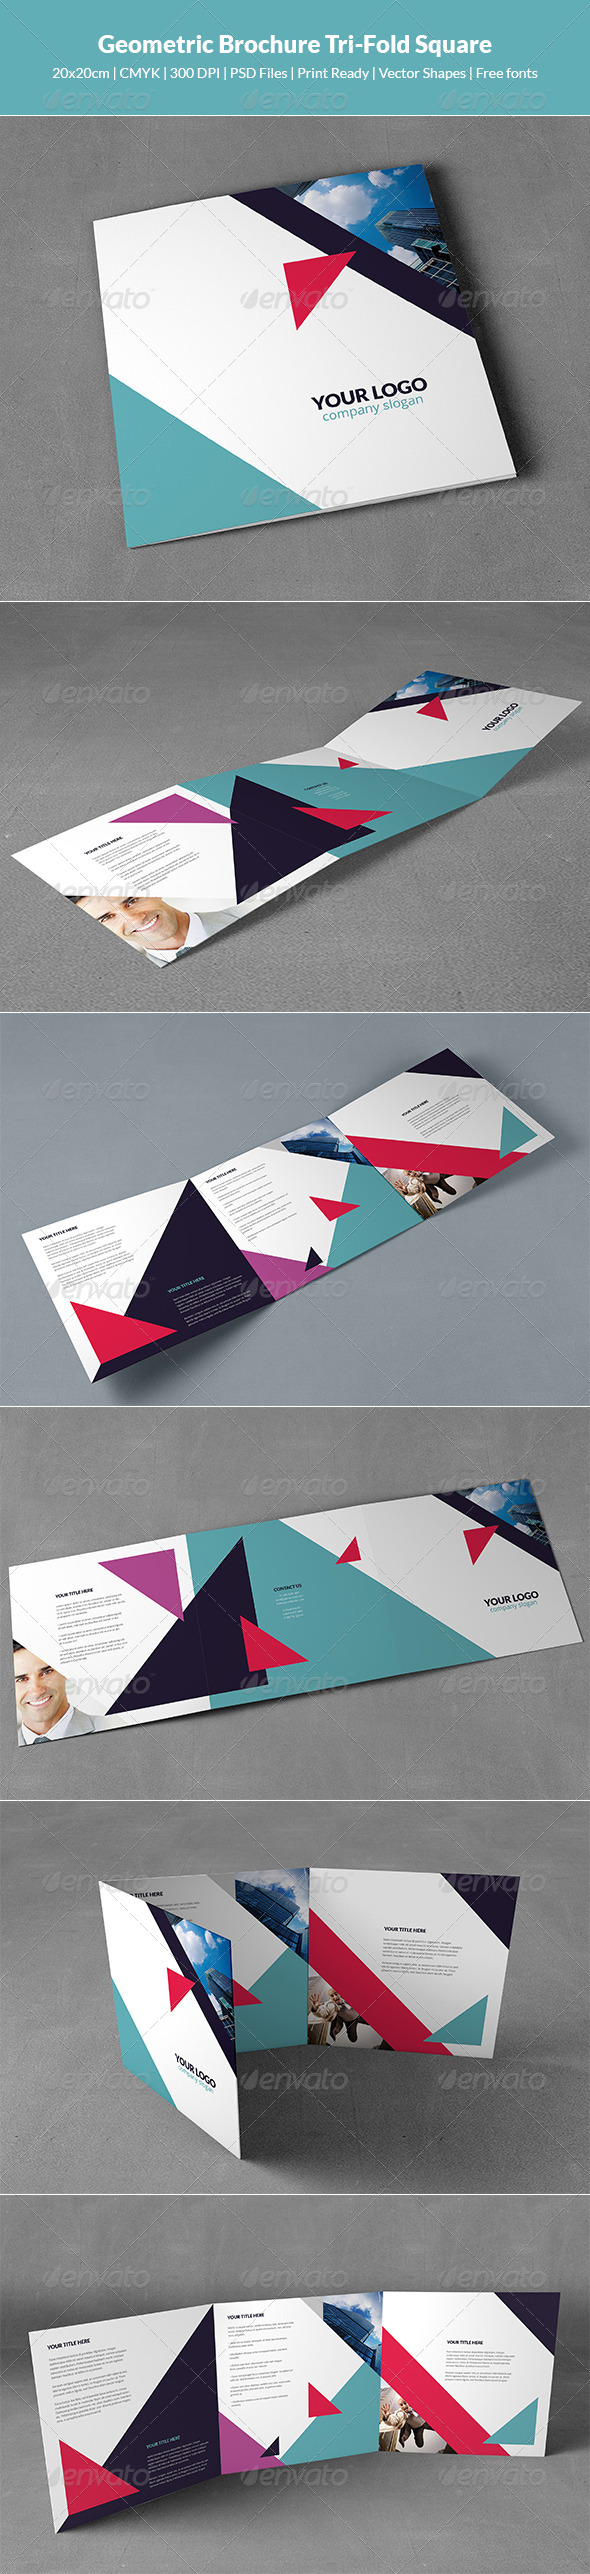 GraphicRiver Geometric Brochure Tri-Fold Square 8548184